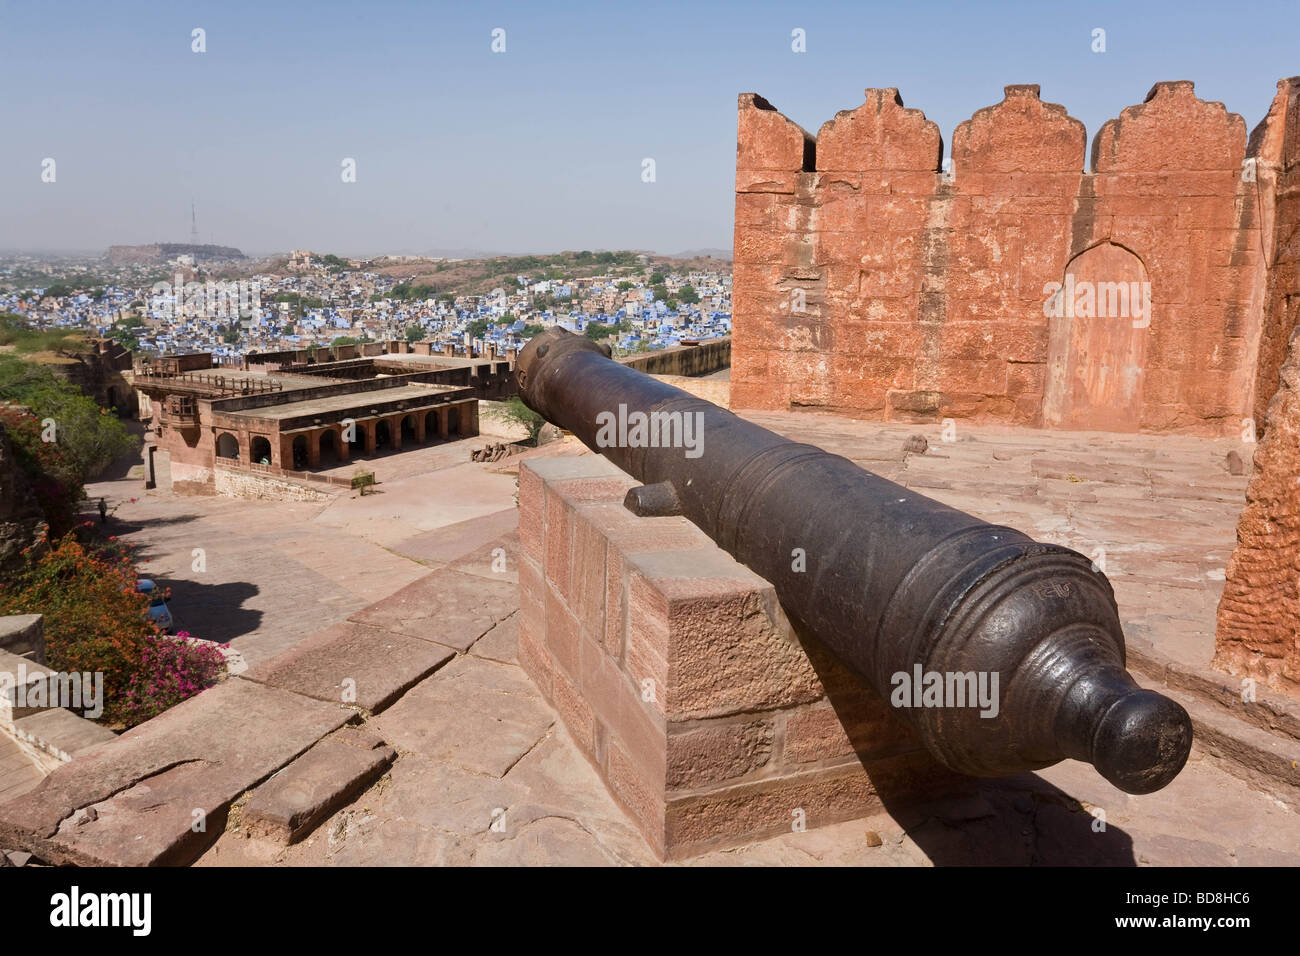 A cannon looking over the blue-painted town of Jodhpur, India - Stock Image